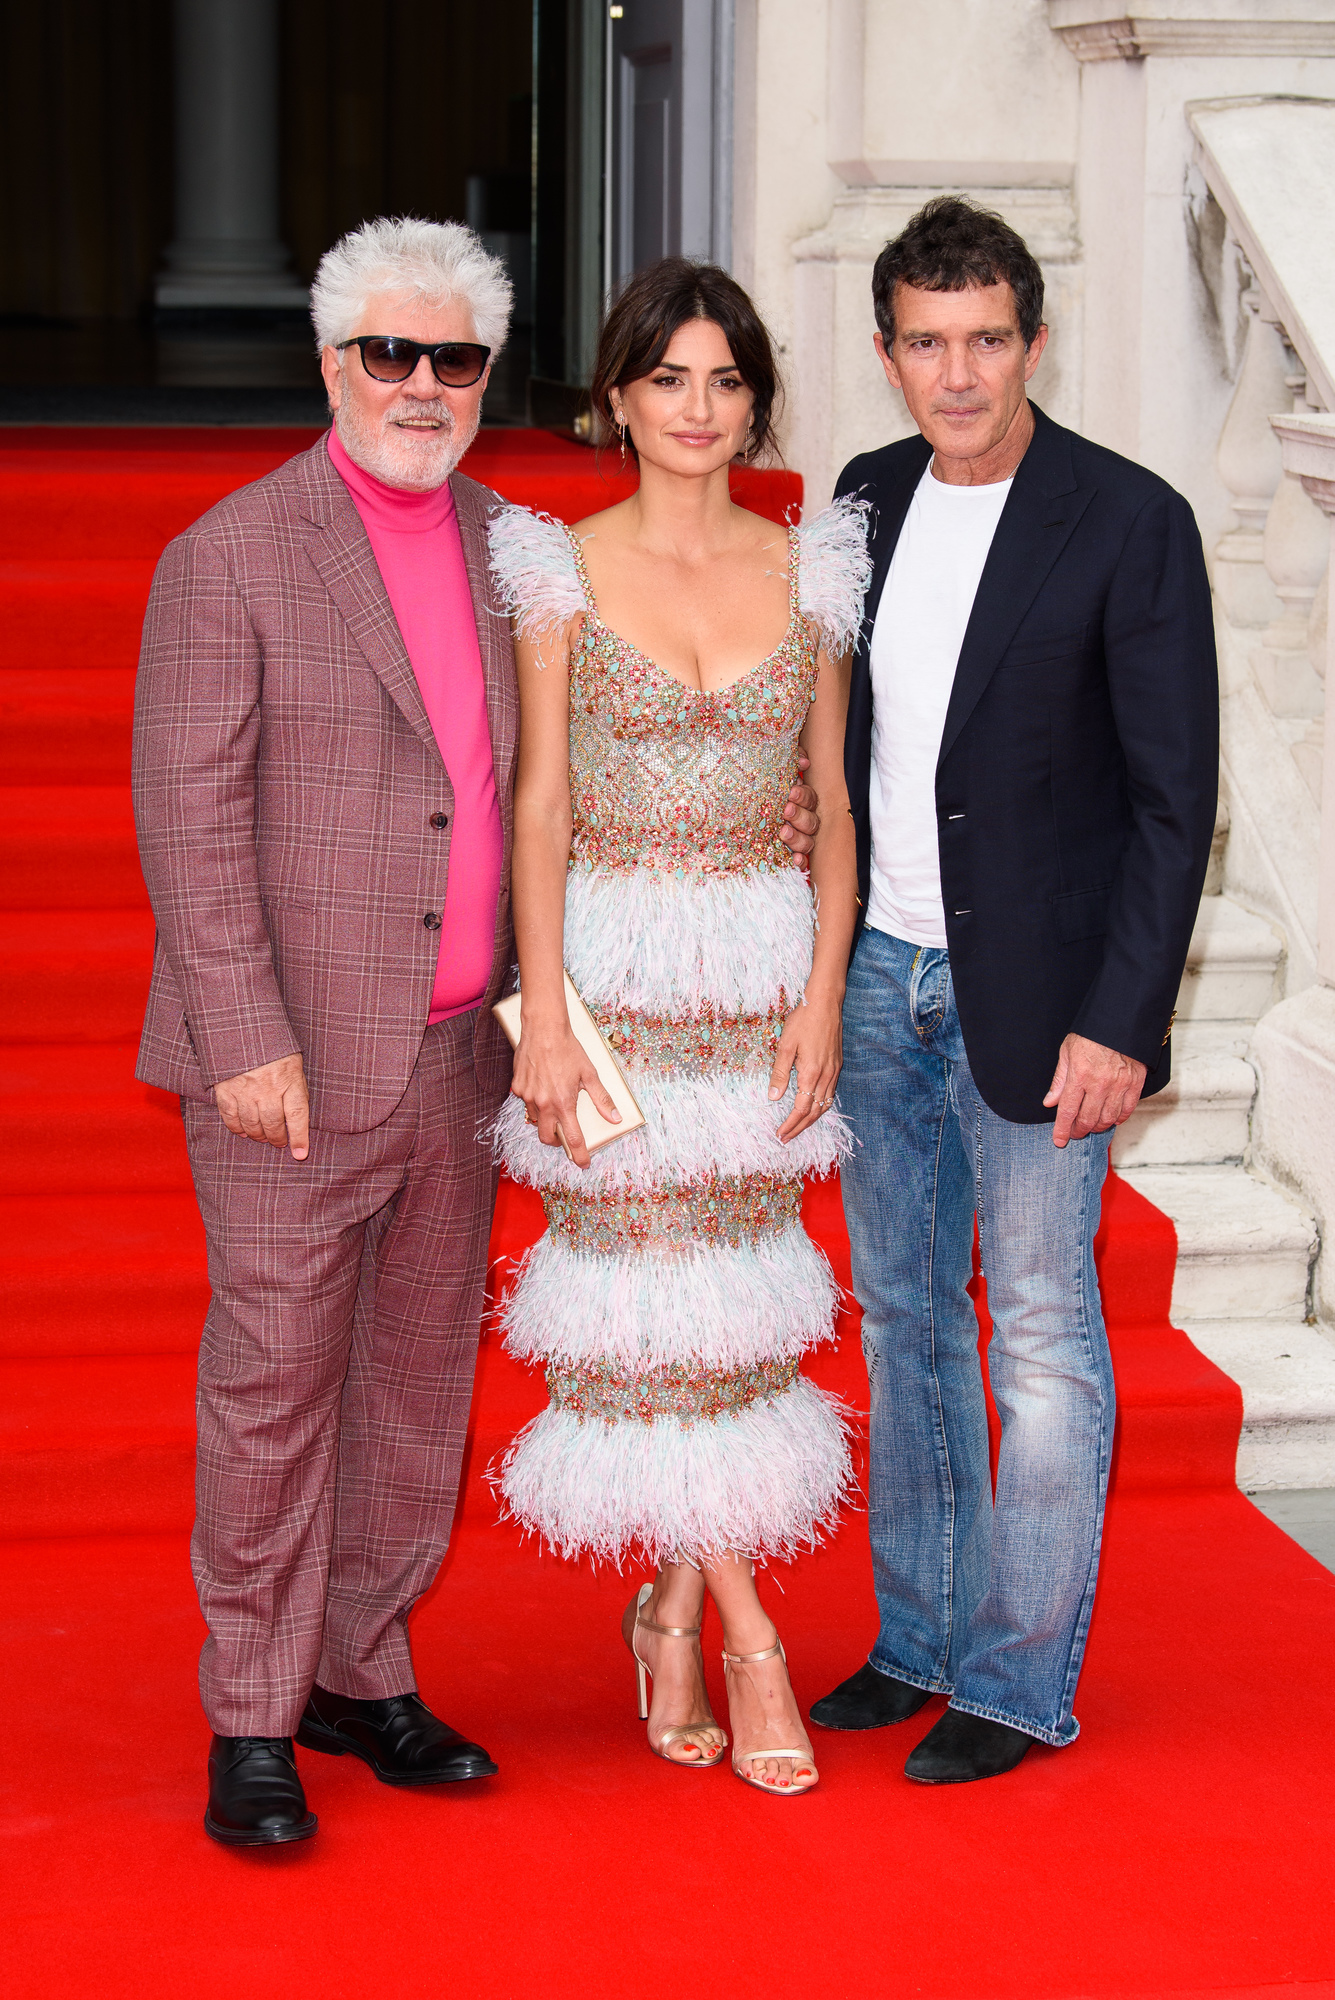 LONDON, ENGLAND - AUGUST 08: Pedro Almodovar, Penelope Cruz and Antonio Banderas attend the